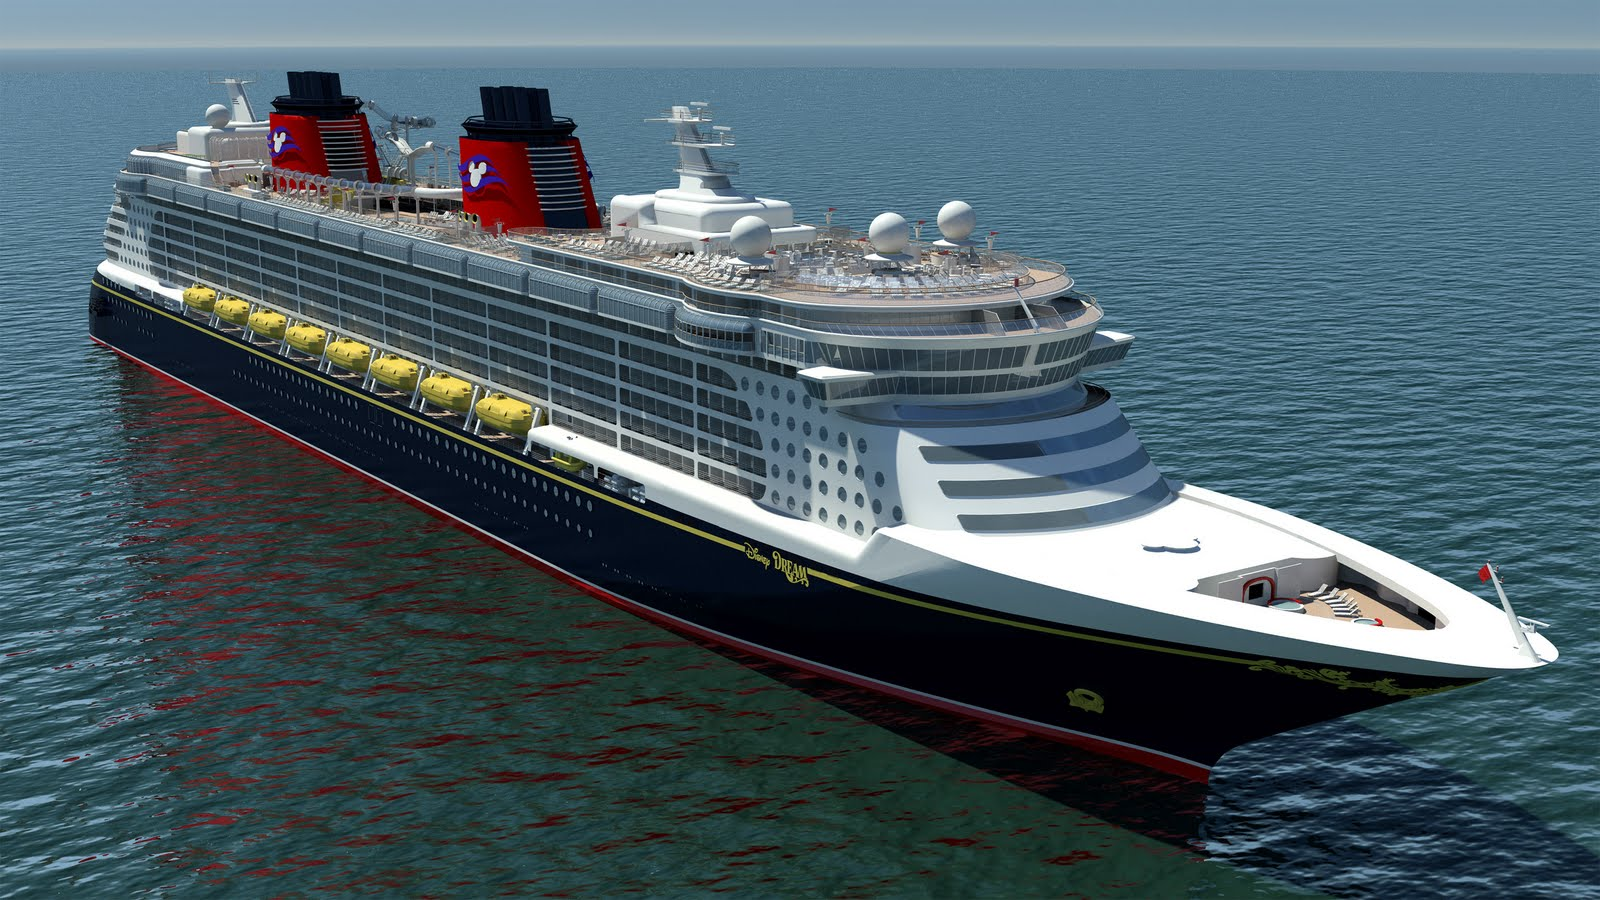 The Magic, Wonder, Dream And Fantasy Of The Disney Cruise Line